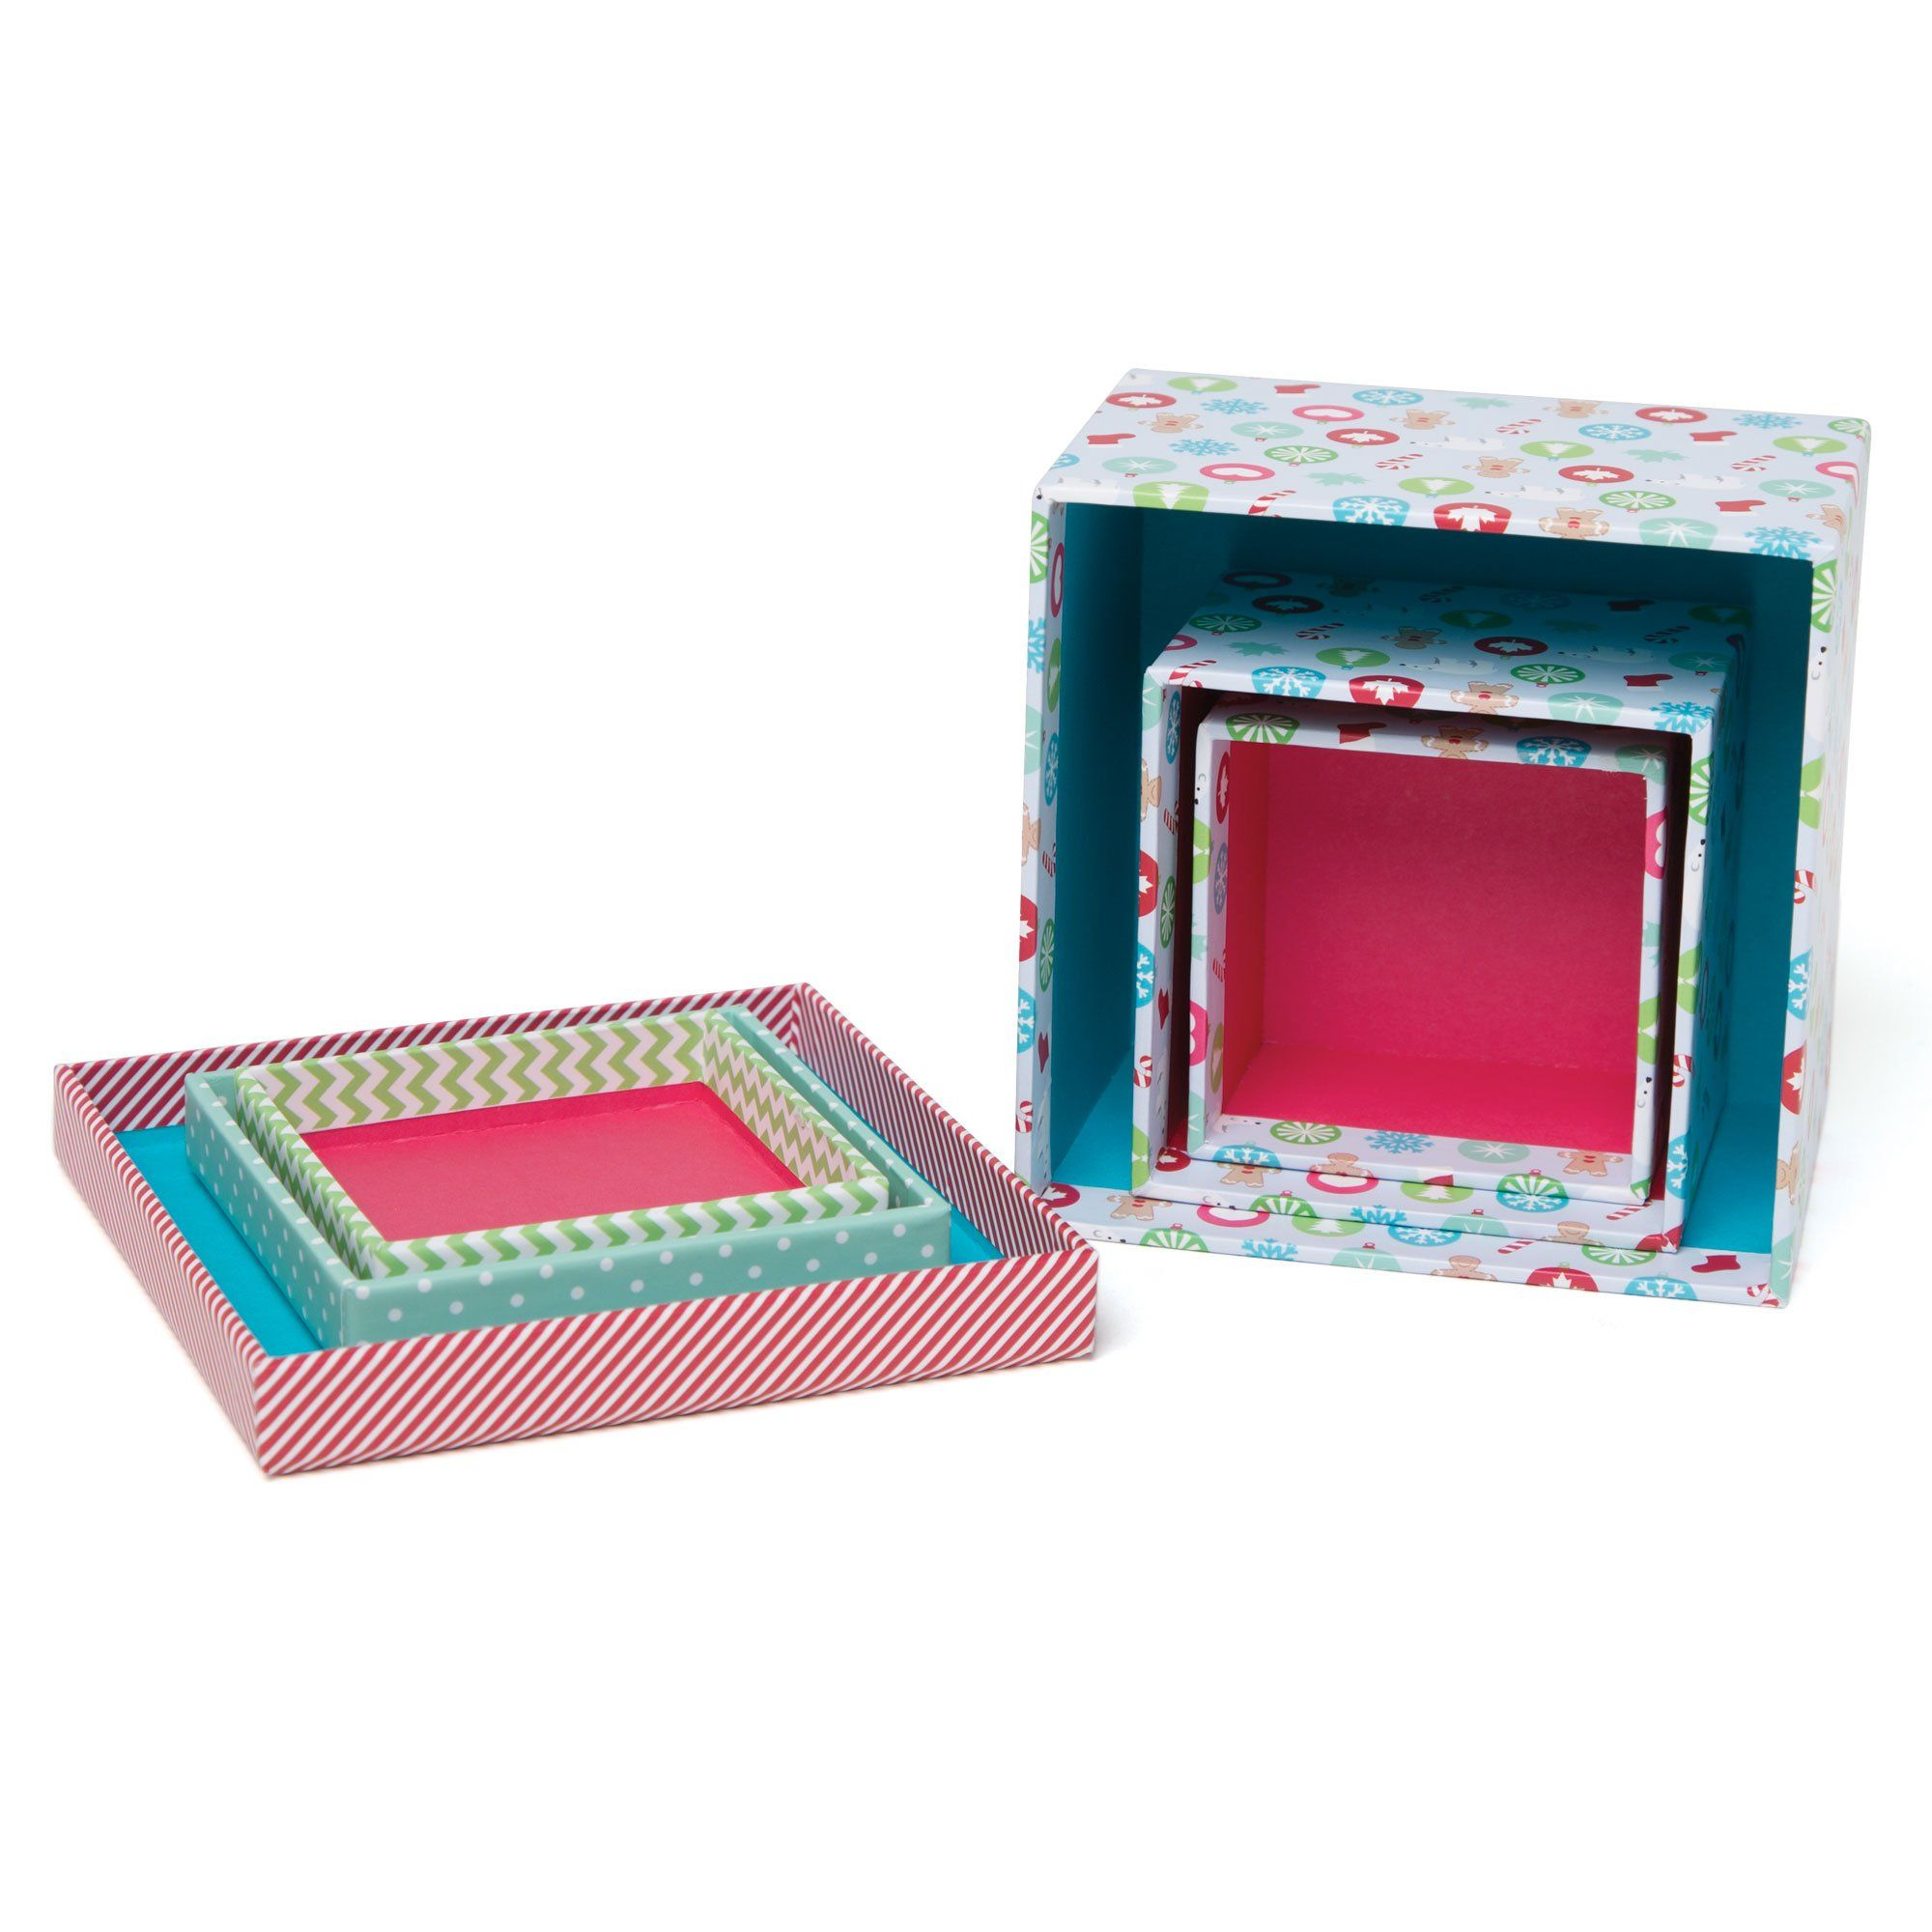 Christmas Traditions set of 3 Christmas gift boxes for all 18 inch dolls